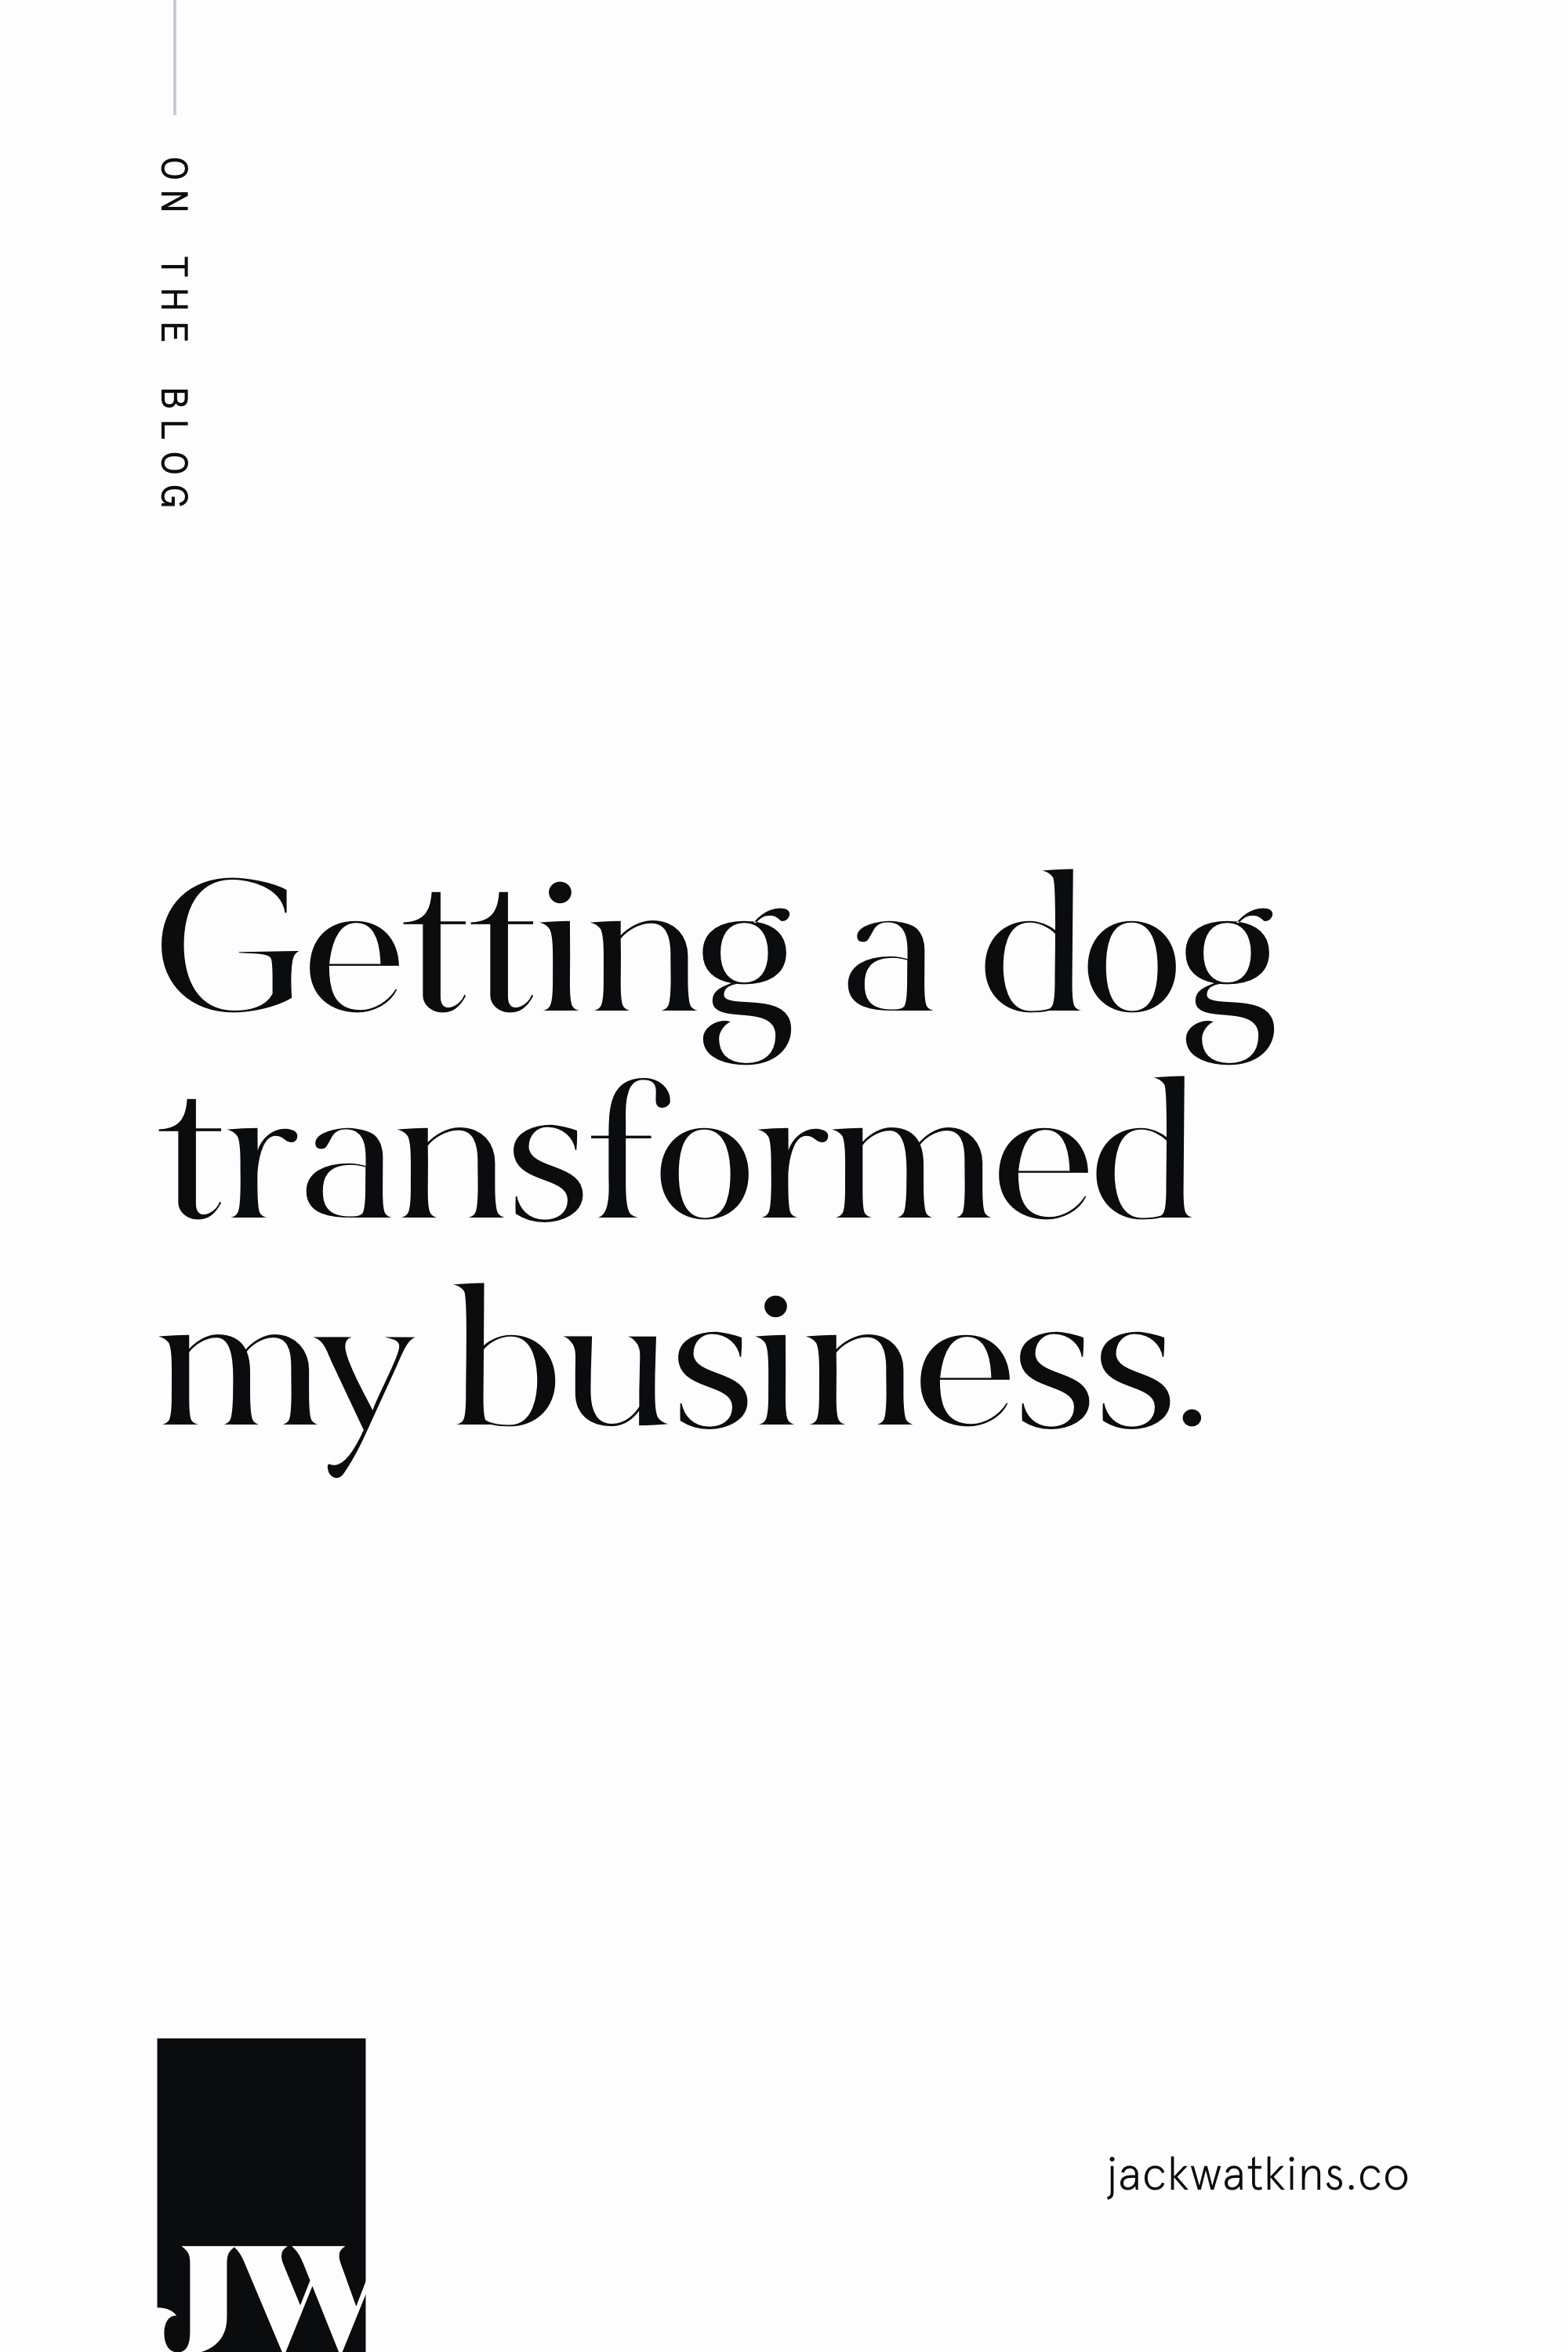 Getting a dog transformed my business.